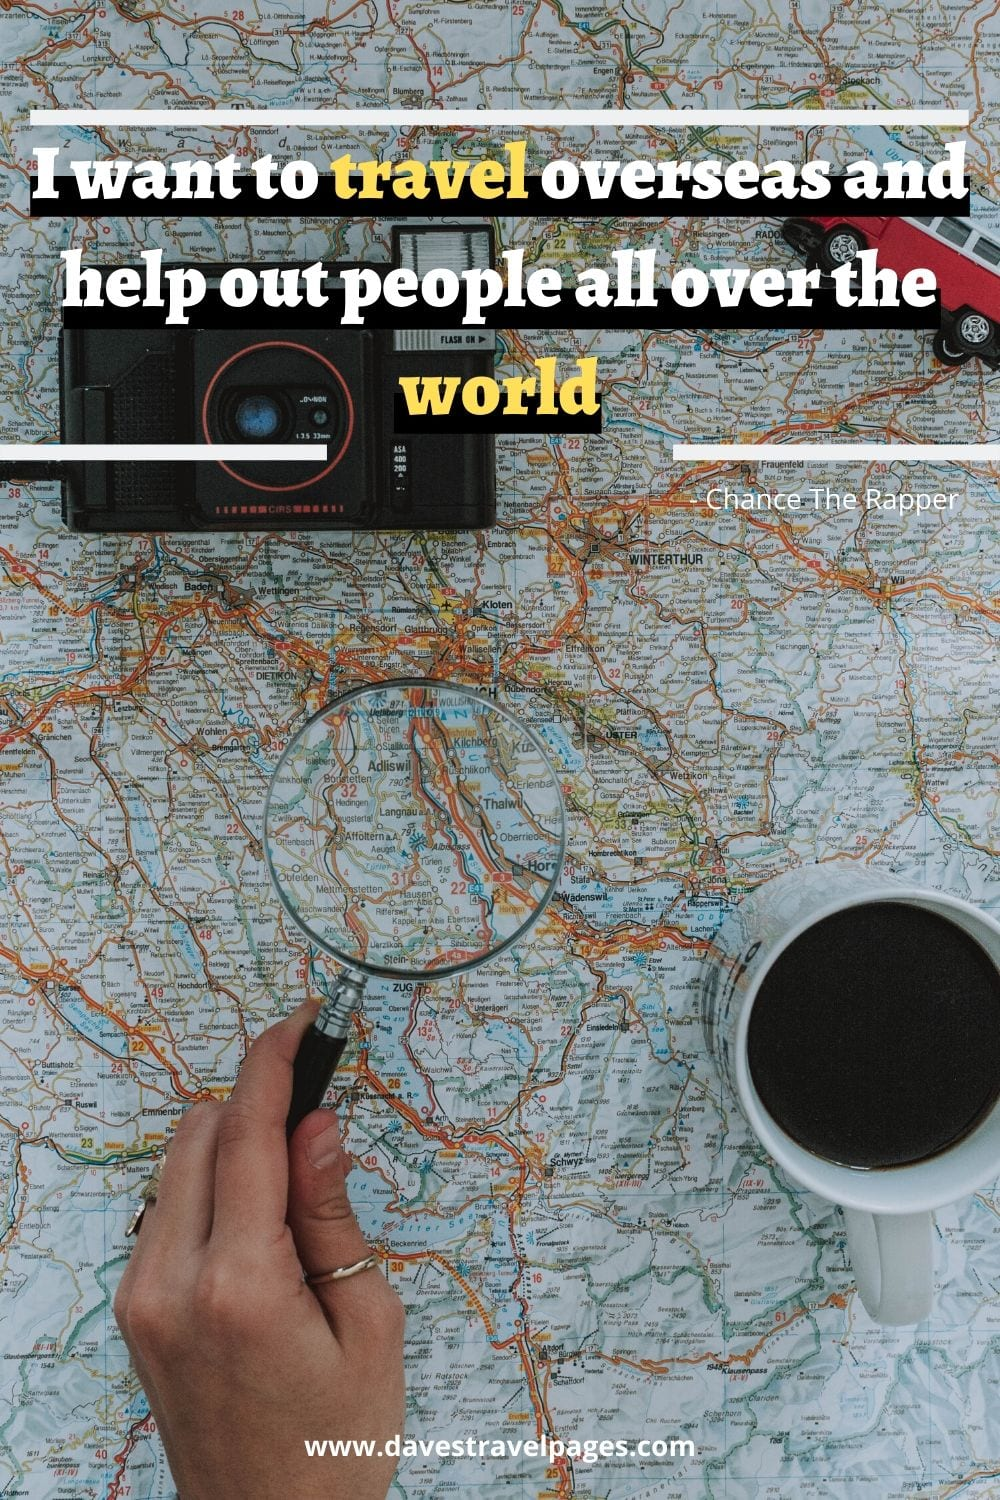 Travel the world captions: I want to travel overseas and help out people all over the world. Chance The Rapper